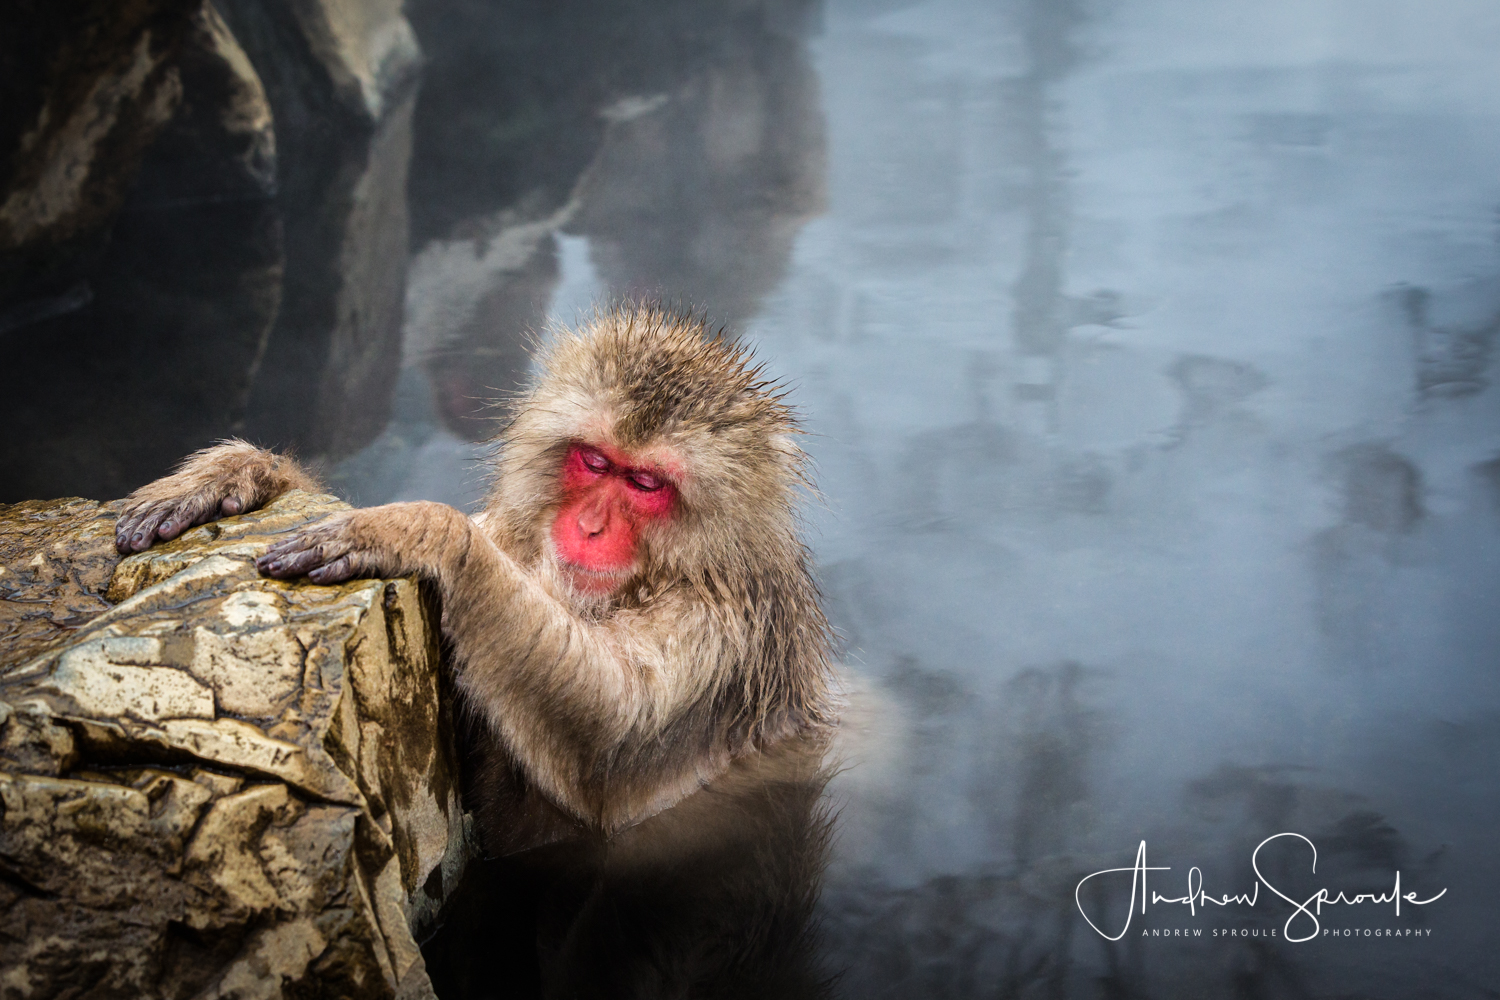 A Snow Monkey, Japanese Macaque ( Macaca fuscata ), sleeping in a thermal hot spring in Jigokudani, Japan